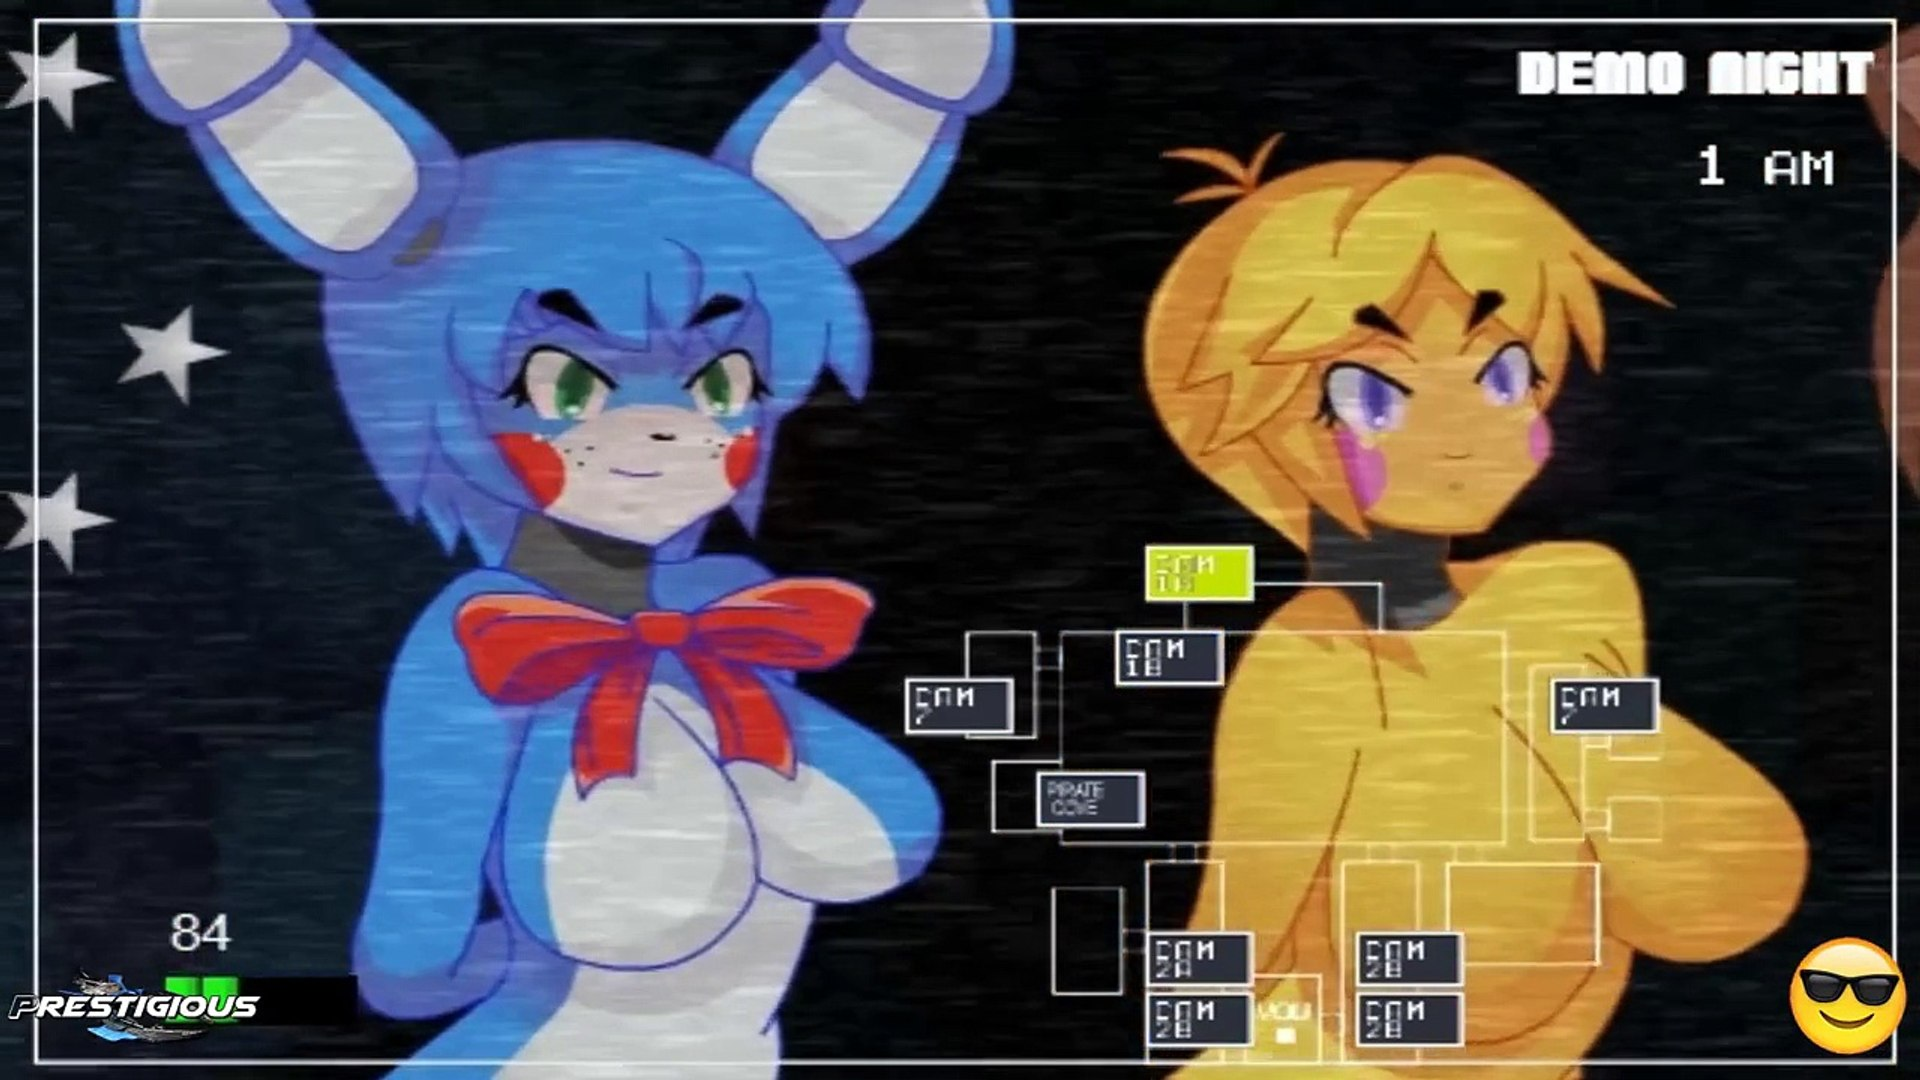 FIVE NIGHTS IN ANIME (Weird Games w/ Ross) BLCD - manga - DramaCD - Anime - Anime song - amv